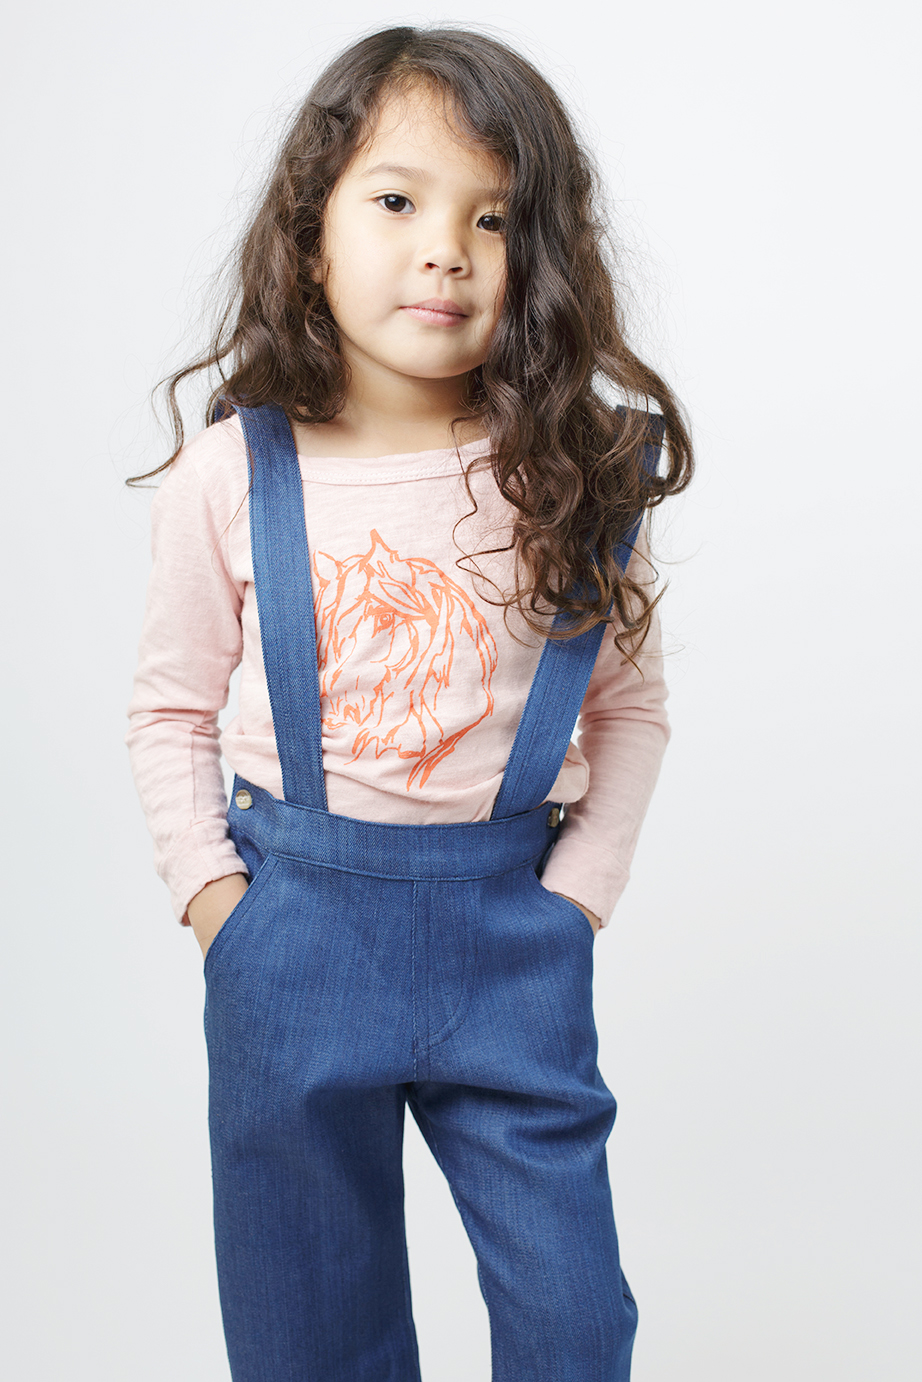 Catalogue photography for Roux Kids